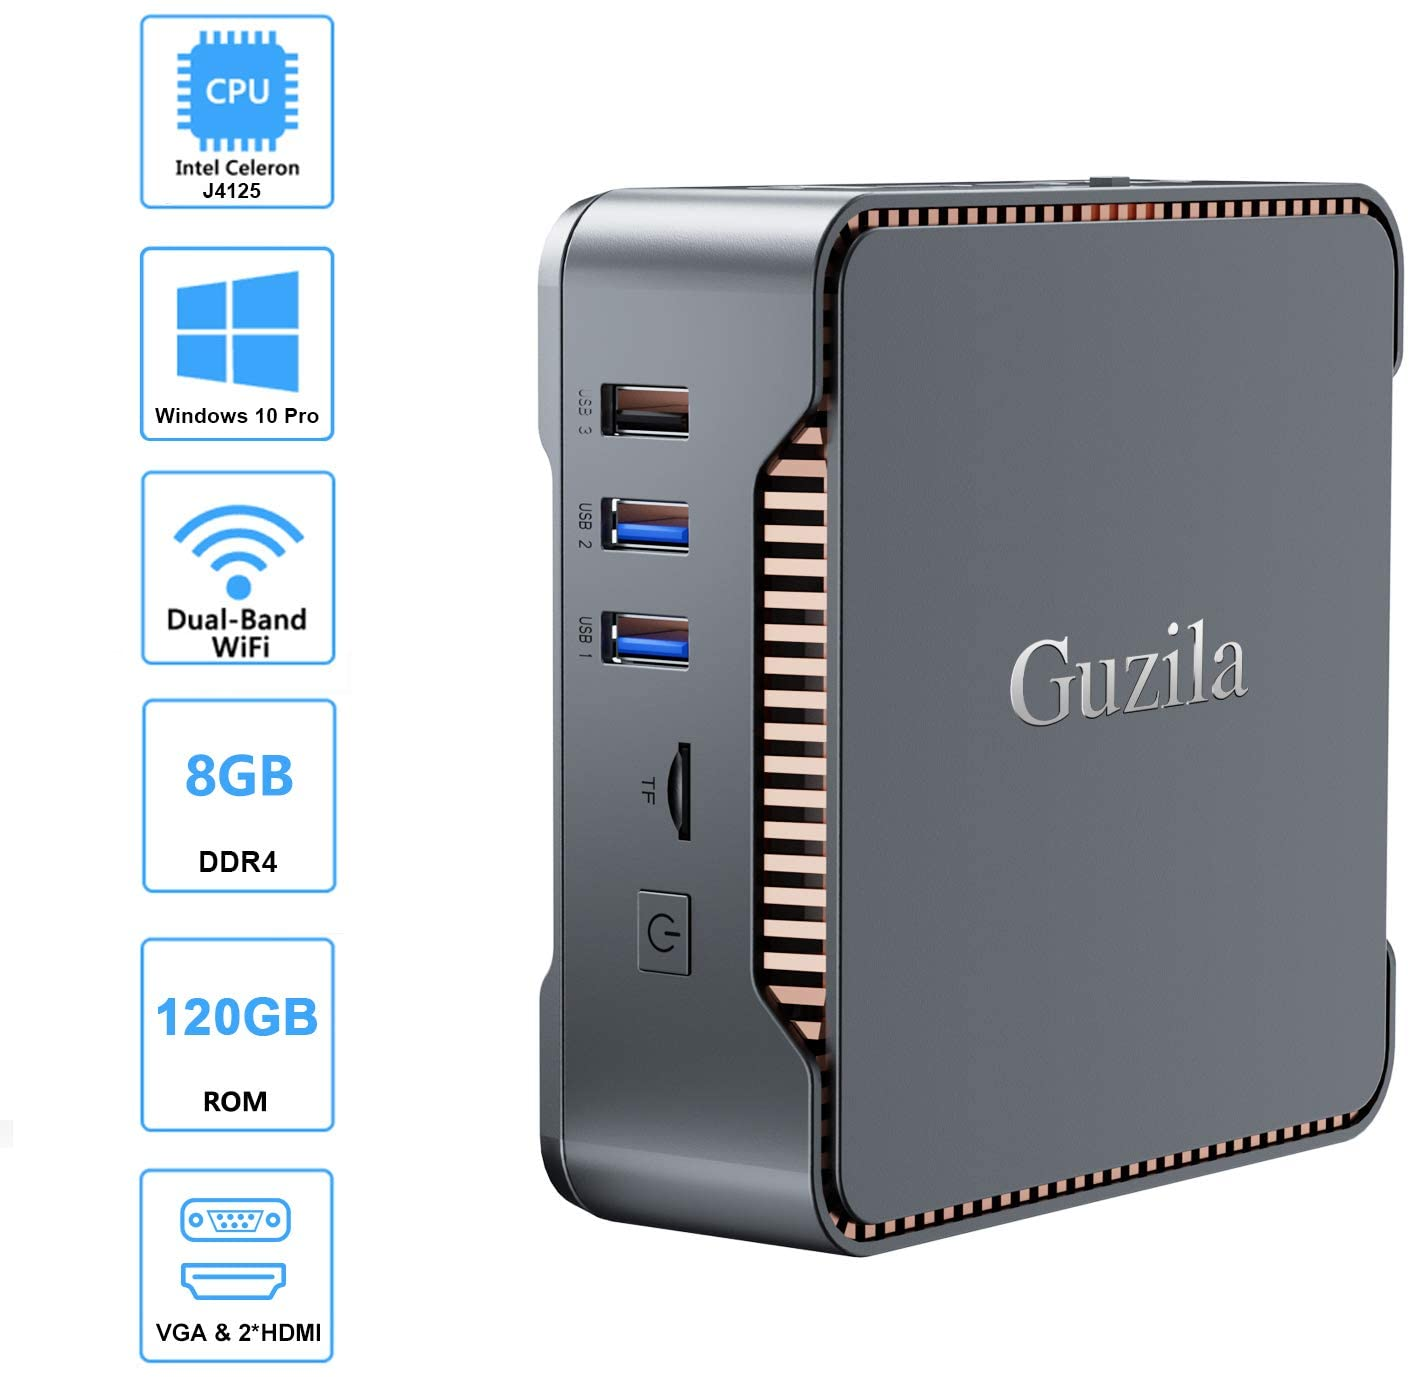 GUZILA Mini PC ak3v